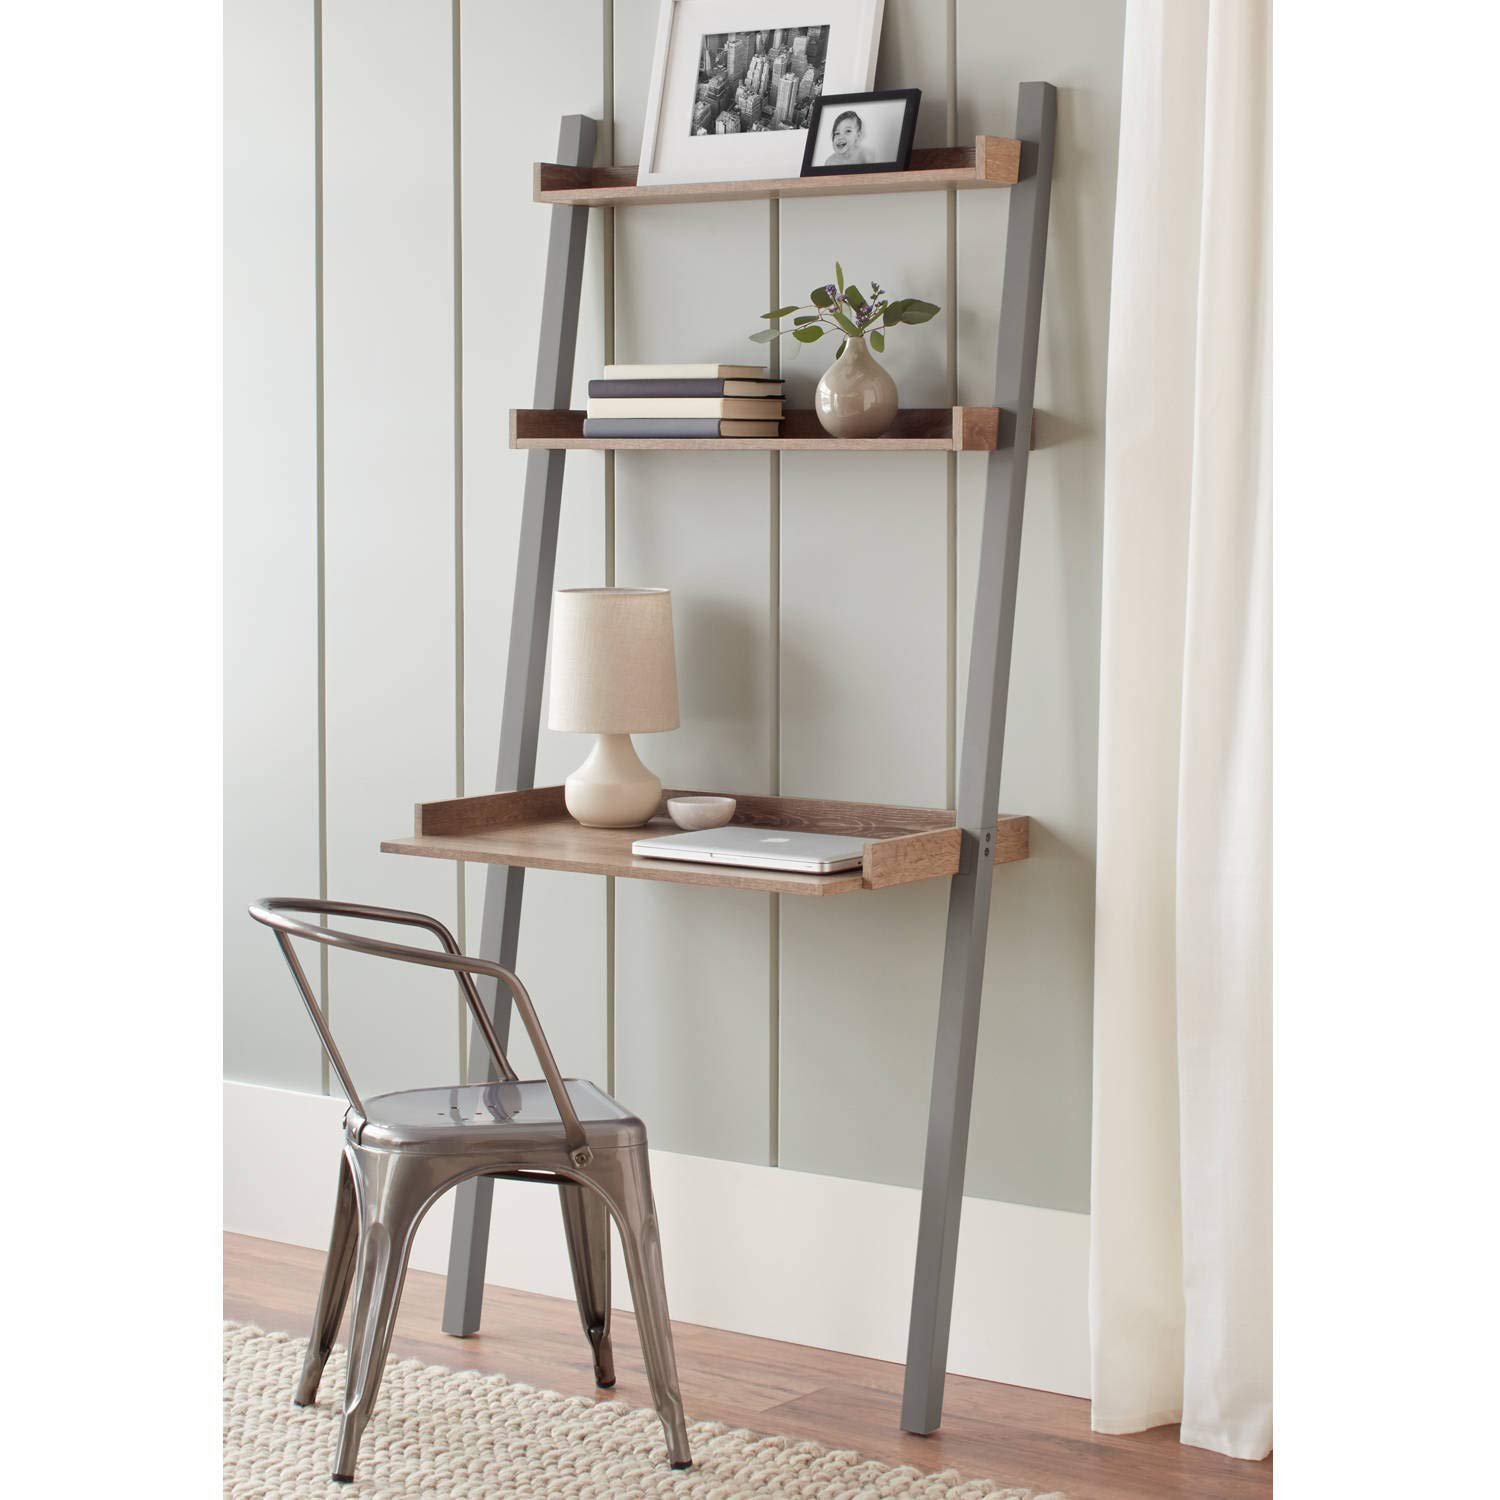 Leaning Desk, Gray Finish, Rustic Modern Design, Compact Shape, Space Saving, Solid Wood Legs, Weathered Wood Grain, Shelving, Open Space, Bundle with Our Expert Guide with Tips for Home Arrangement